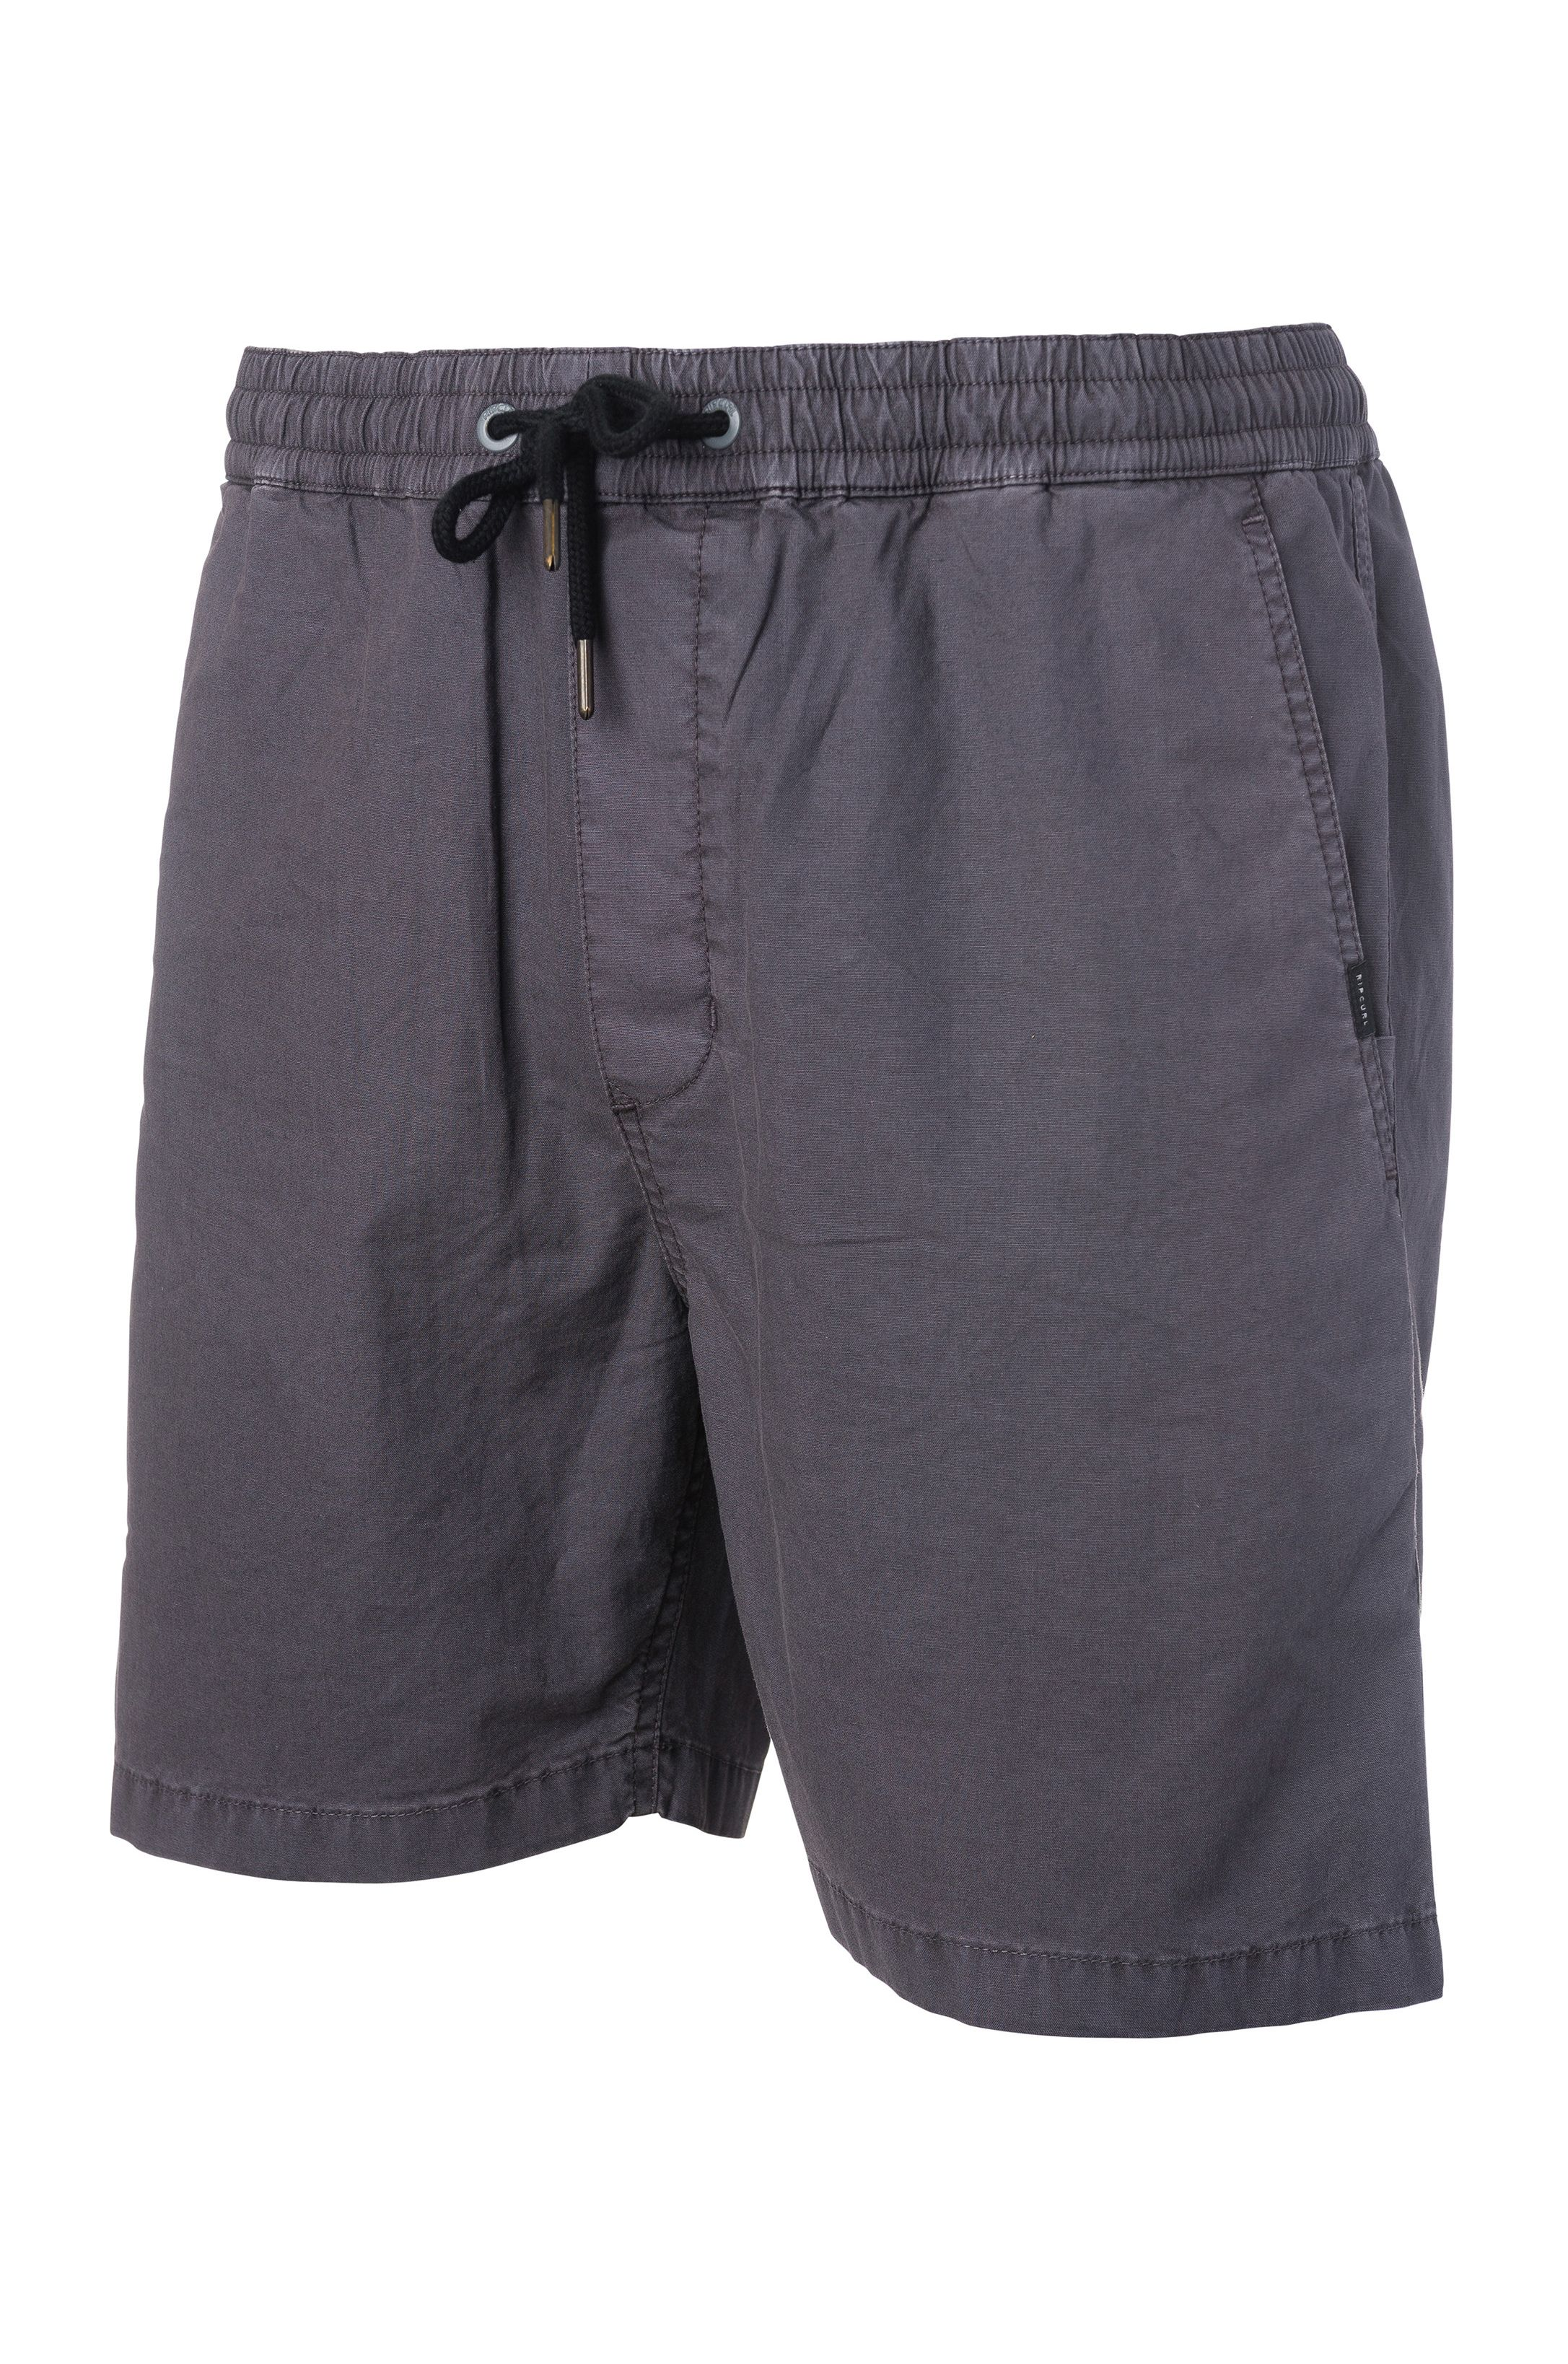 Walkshorts Rip Curl ORBIT WALKSHORT Anthracite